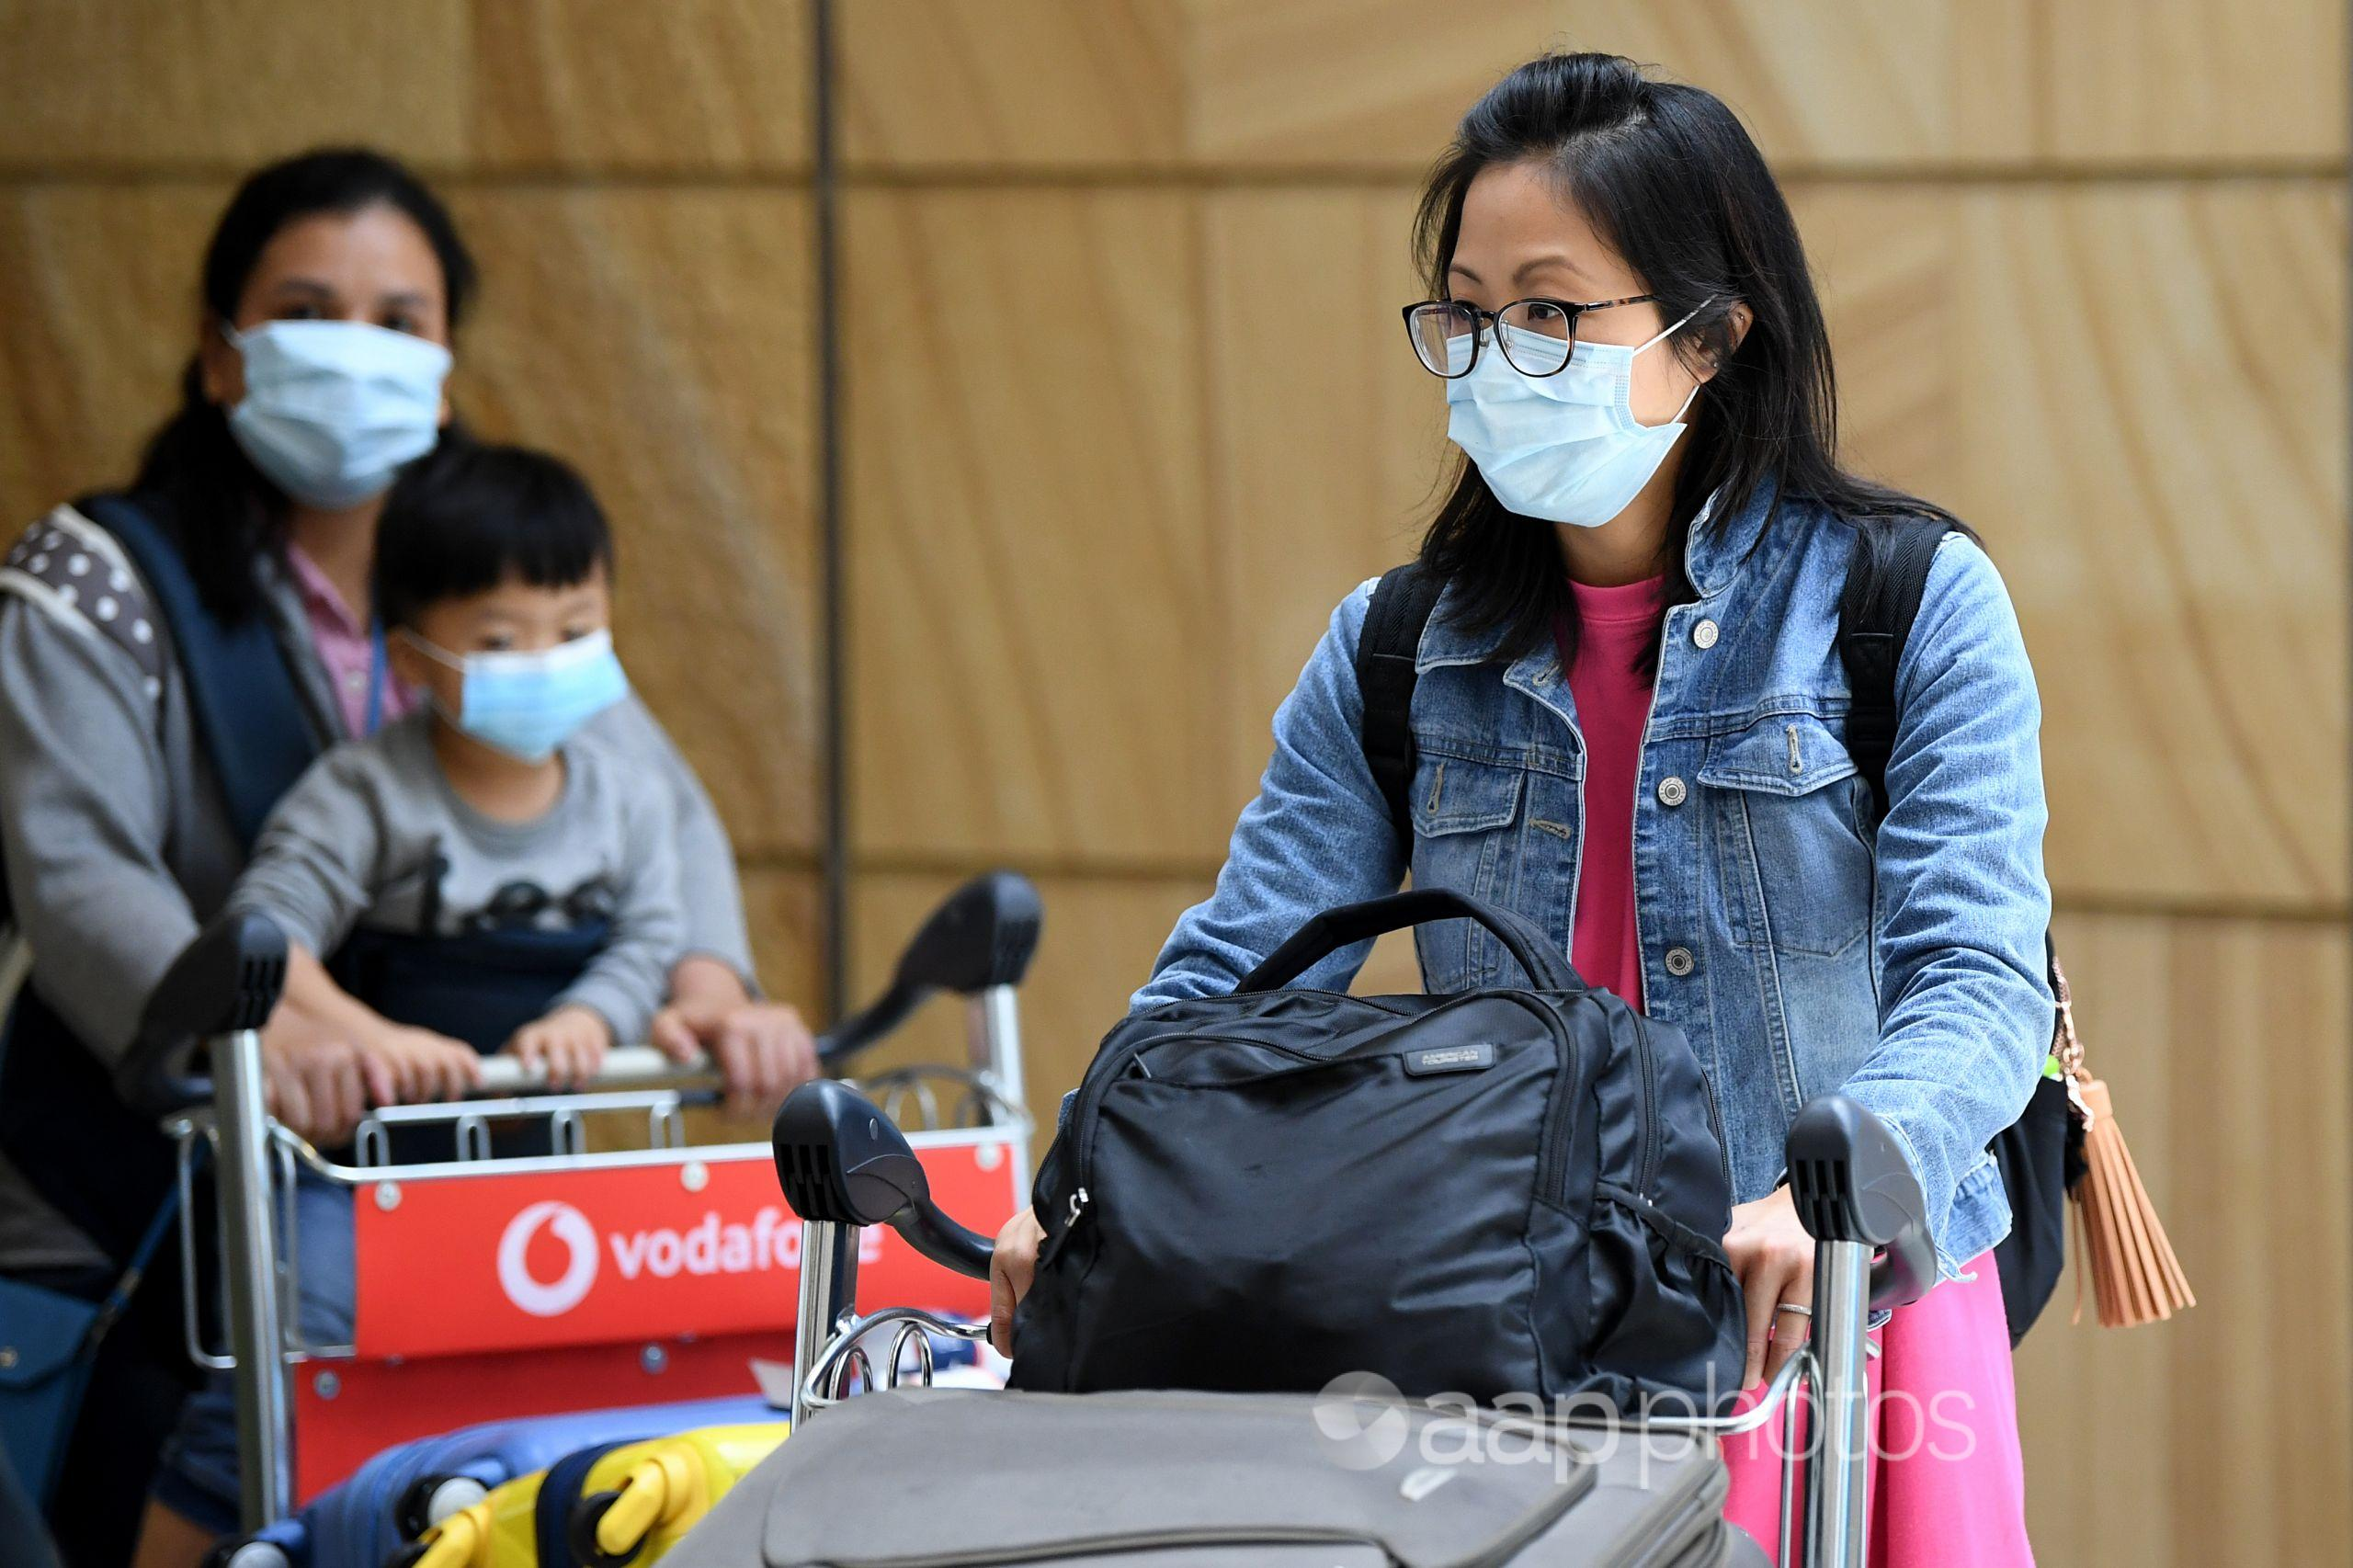 Woman in mask pushes luggage trolley at airport.